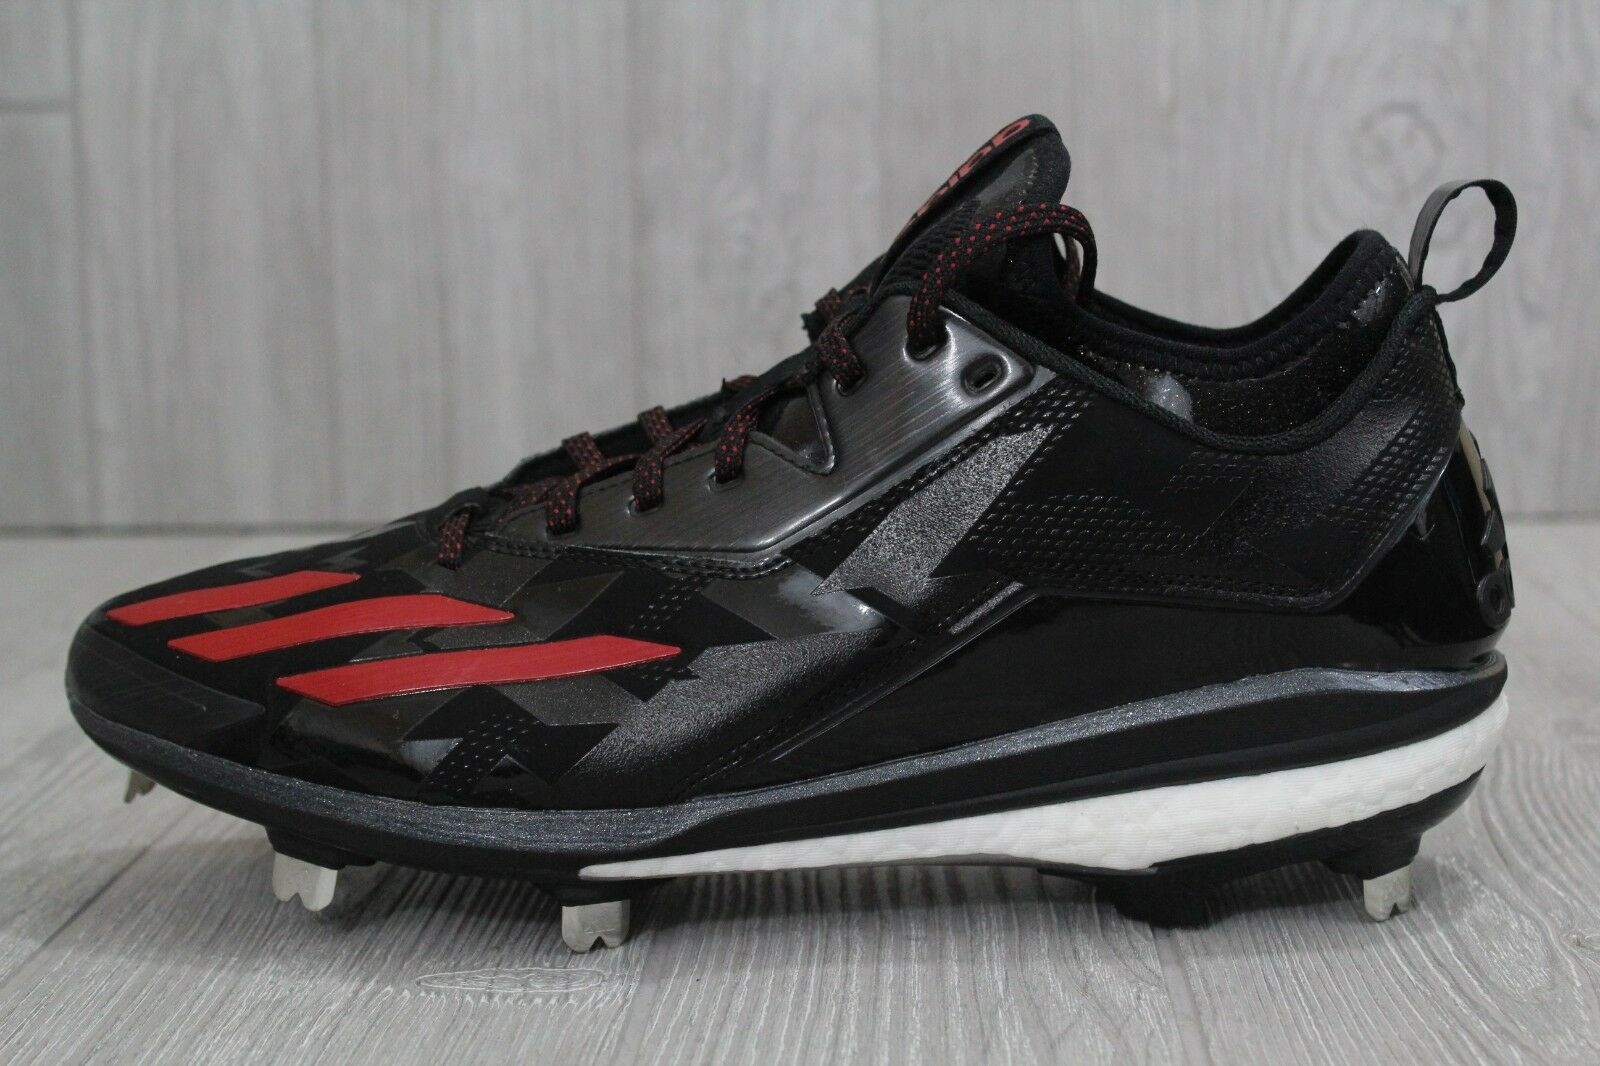 28 Mens Adidas Boost Icon 2.0 Metal Baseball Cleats Black Red Energy Q16525 11.5